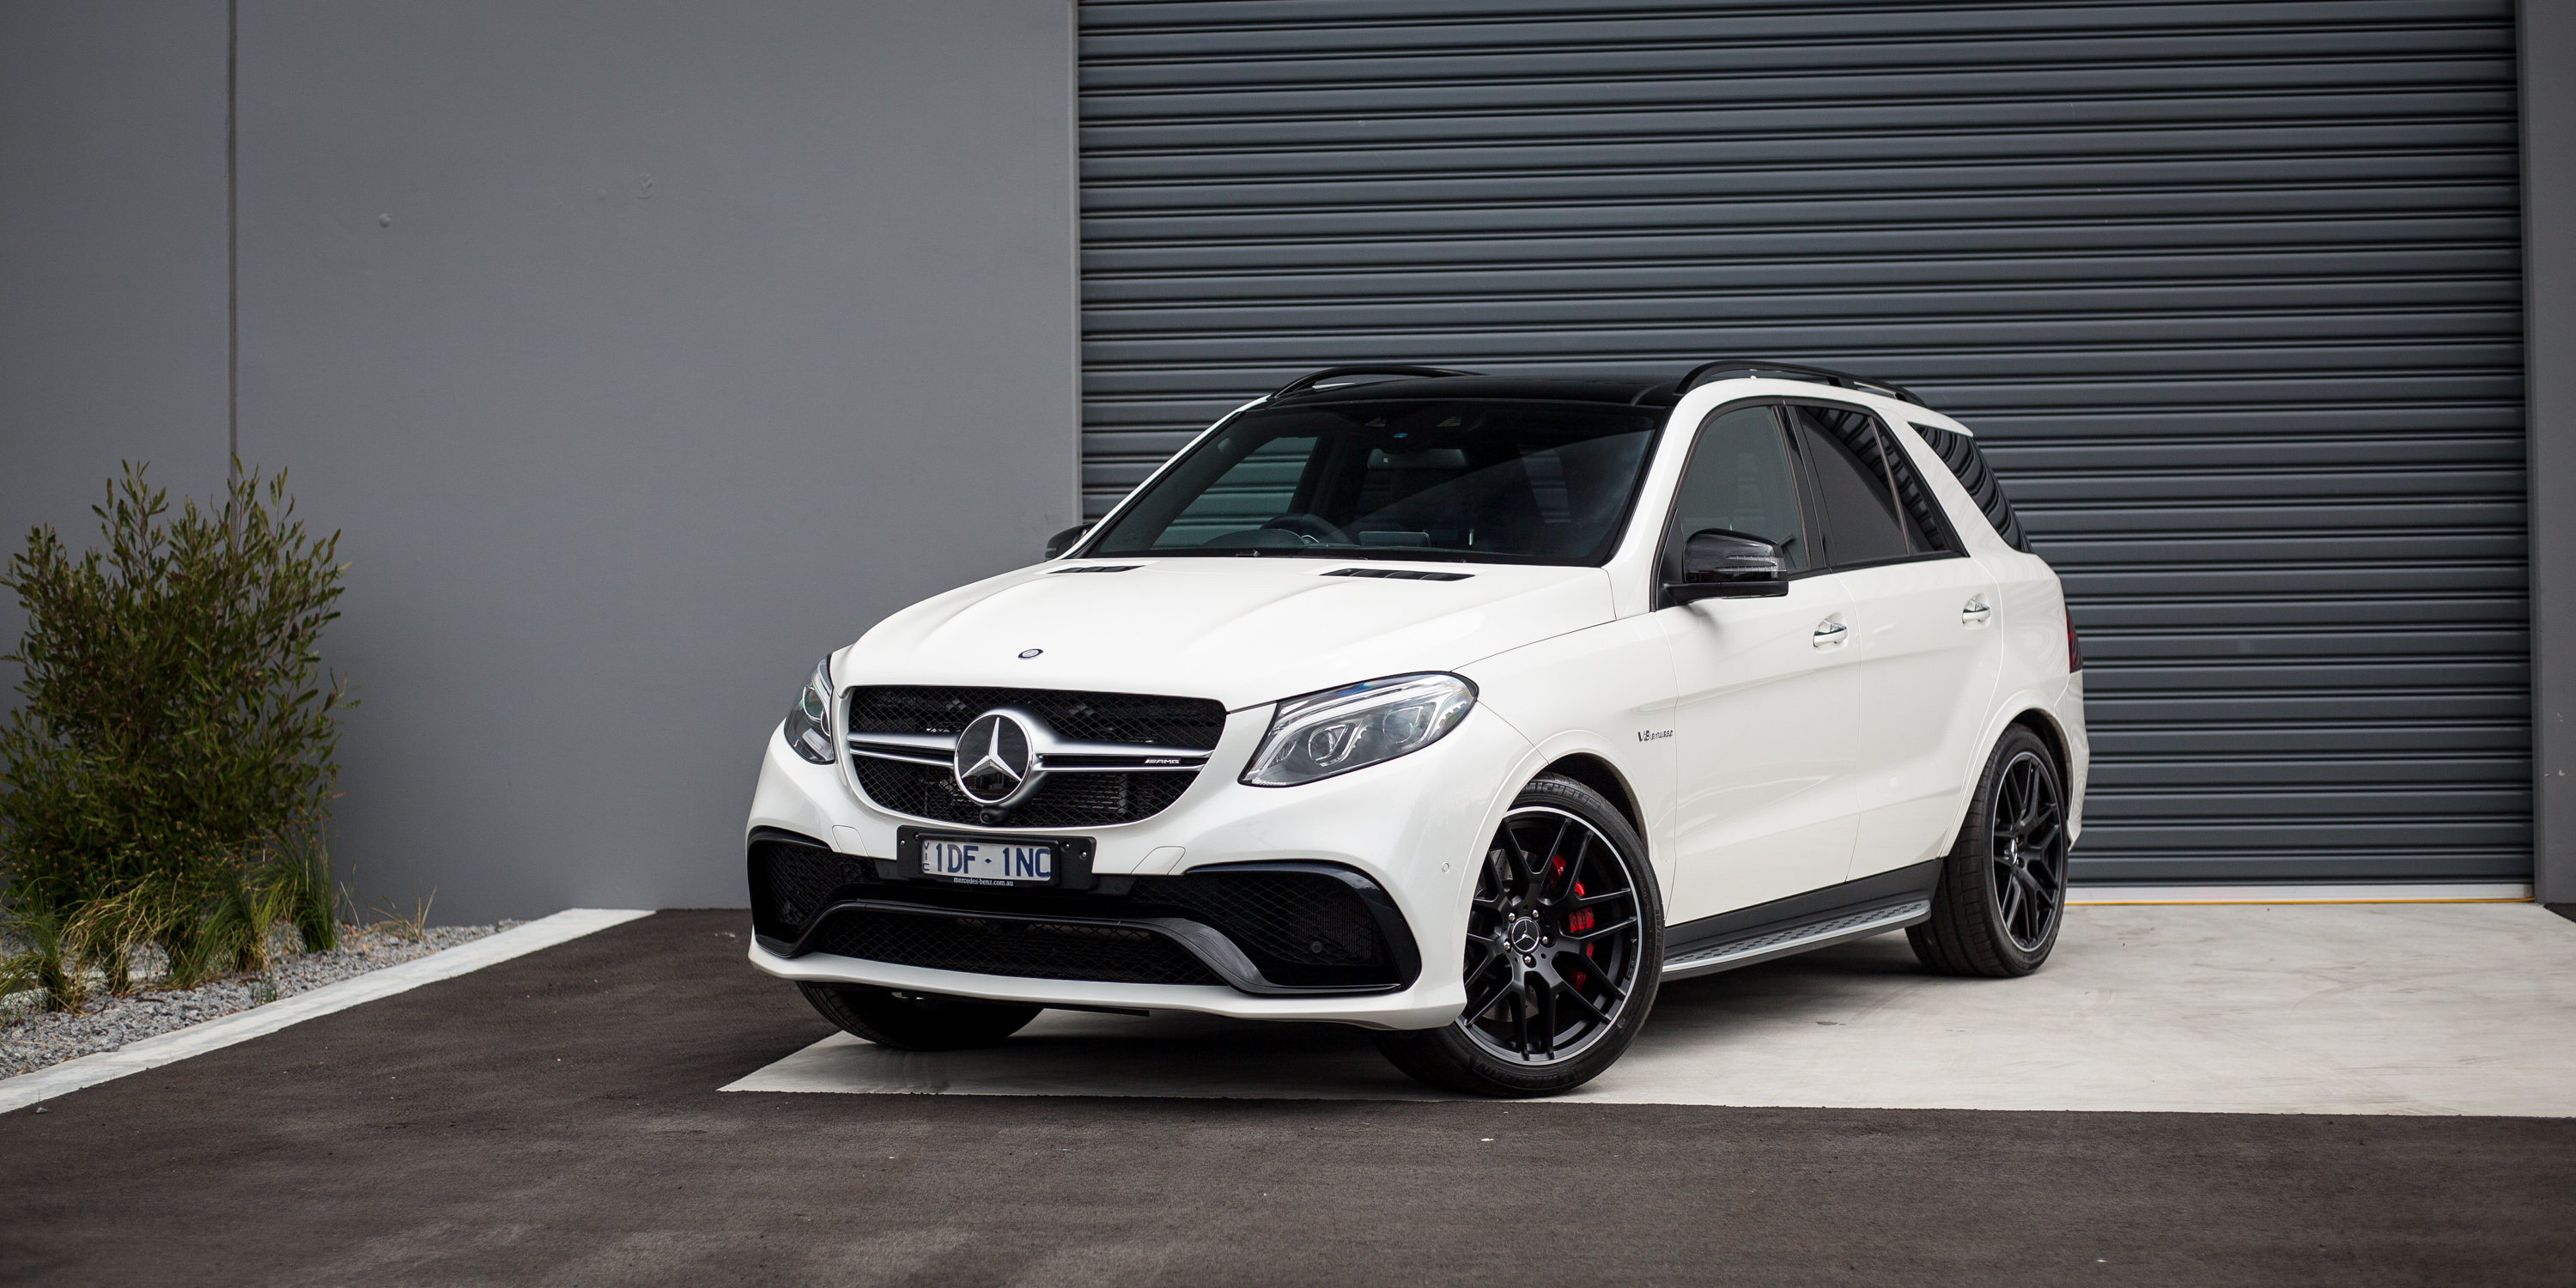 2016 mercedes amg gle63 s review caradvice for Mercedes benz amg suv price